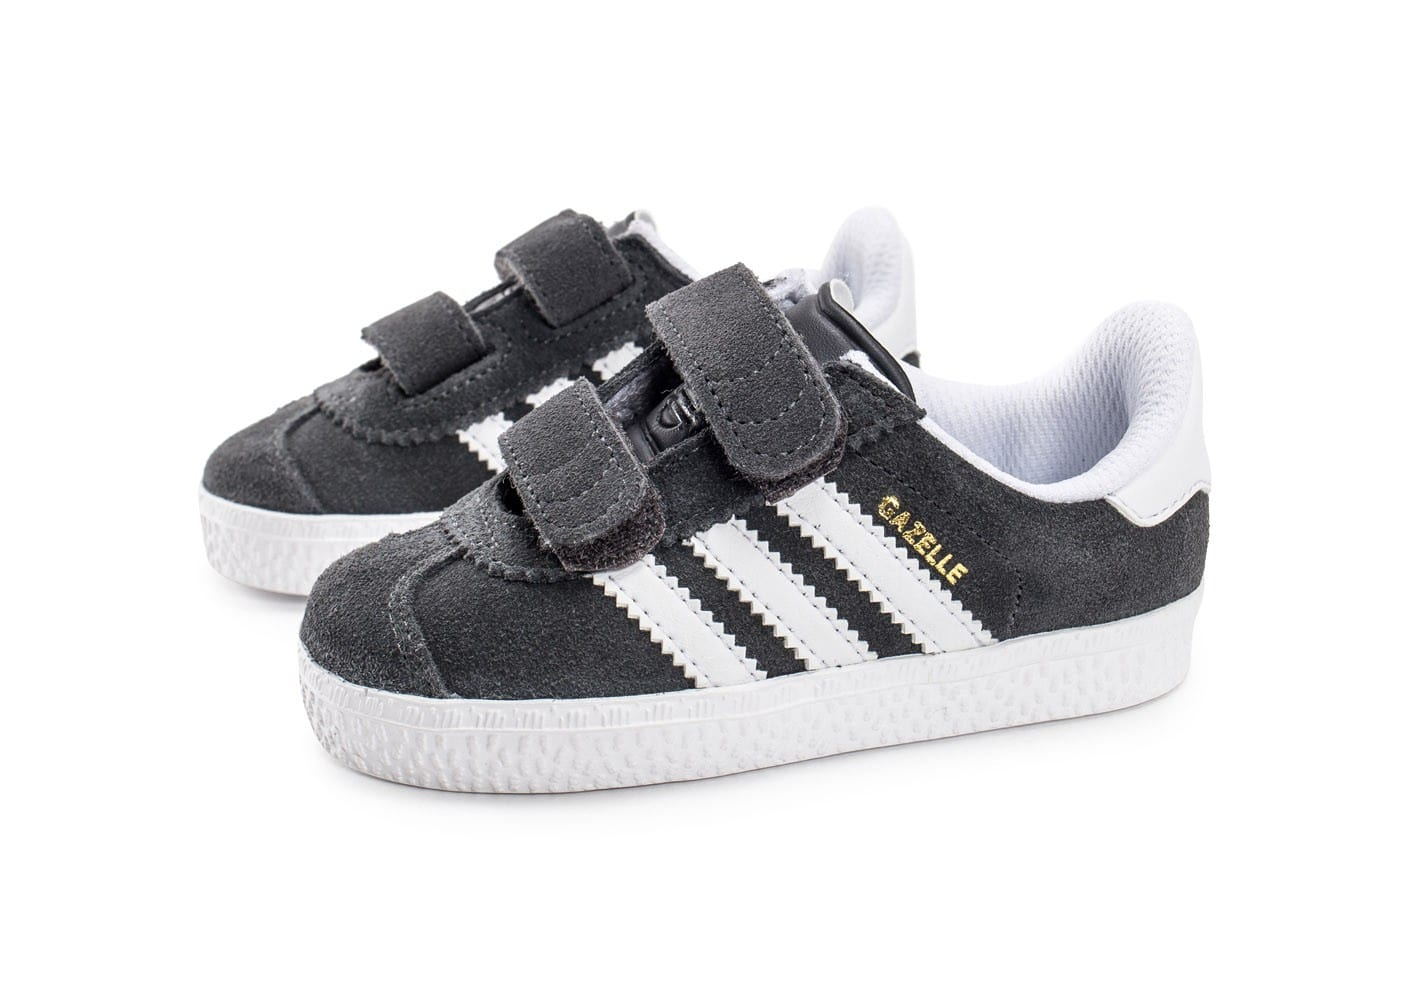 adidas gazelle 2 cf b b grise chaussures adidas chausport. Black Bedroom Furniture Sets. Home Design Ideas